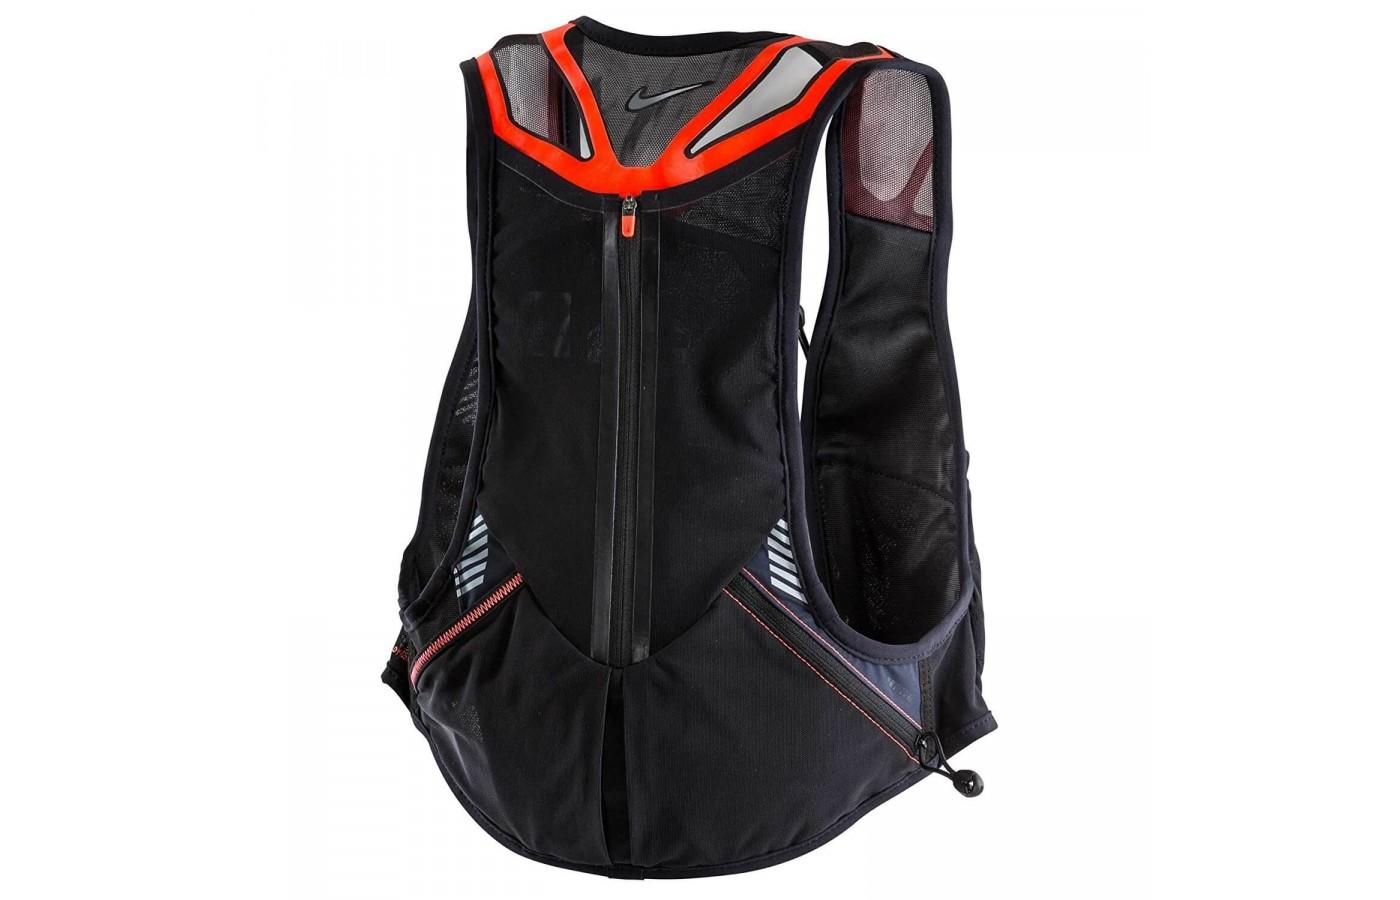 The vest features breathable mesh and welded overlays